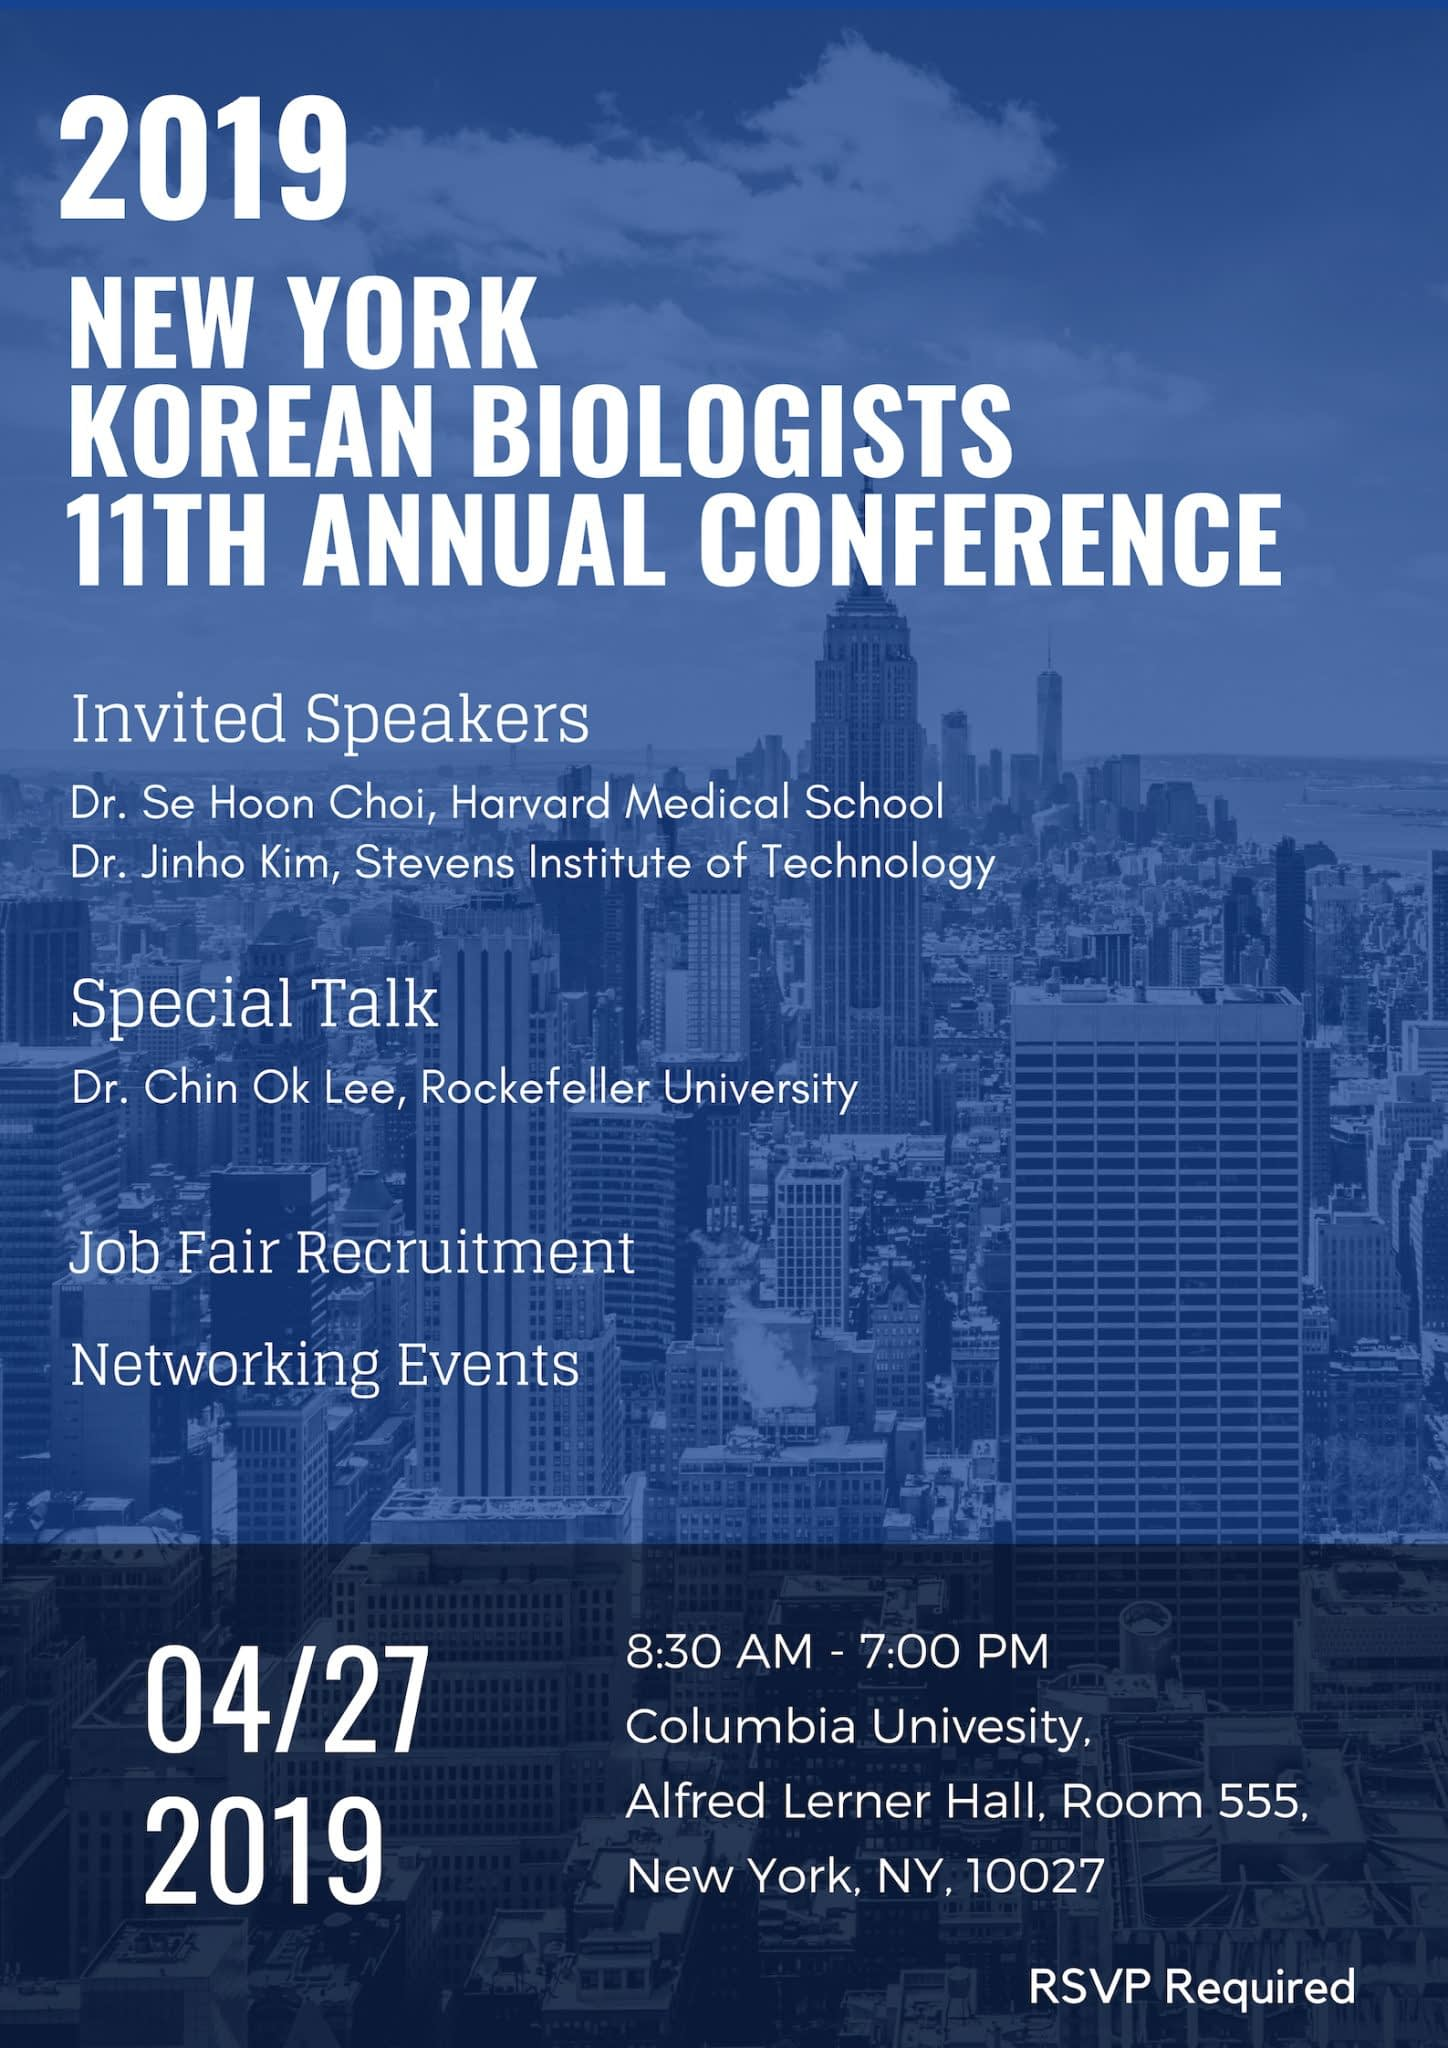 11th NYKB Conference poster without logo